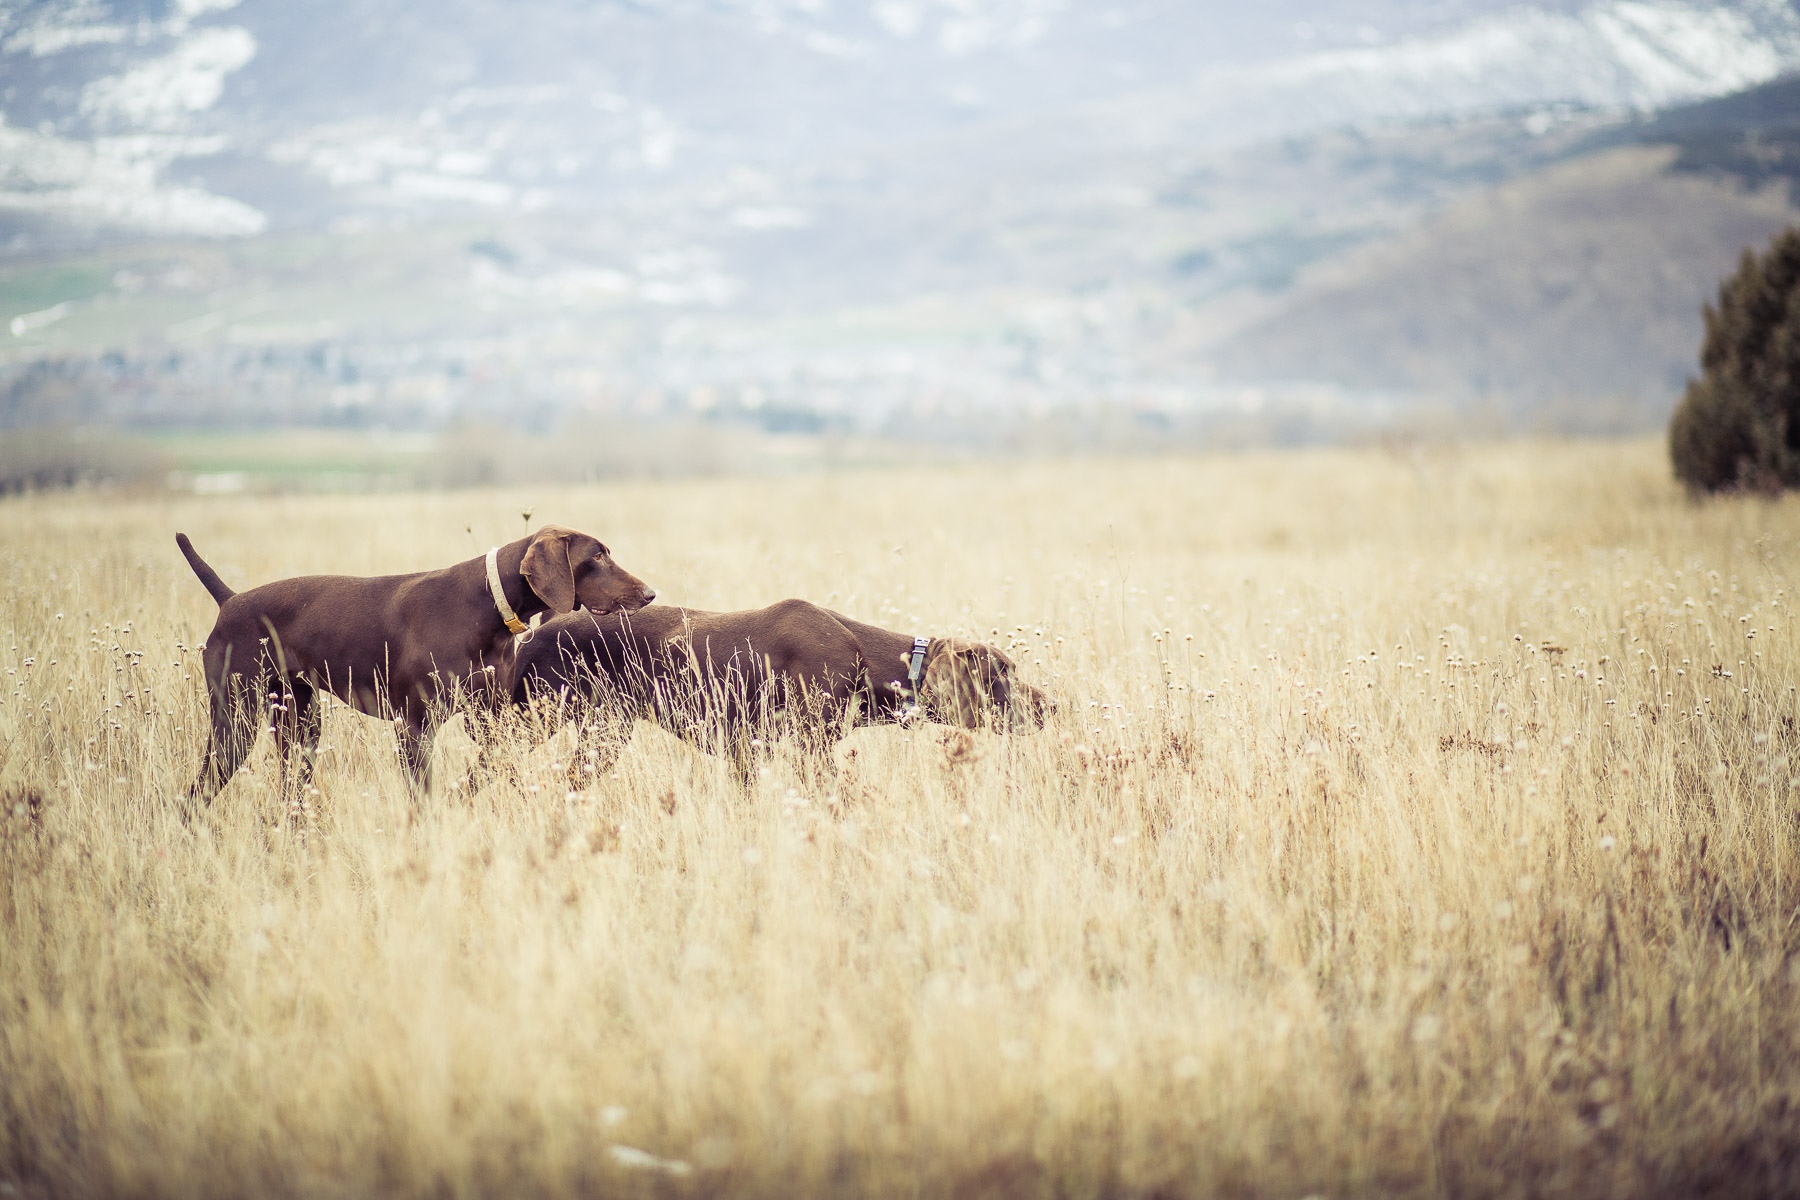 2dog-lifestyle-photographer-hunter-dogs-fetching-pheasants-nature-outdoors-bloodhounts-.jpg